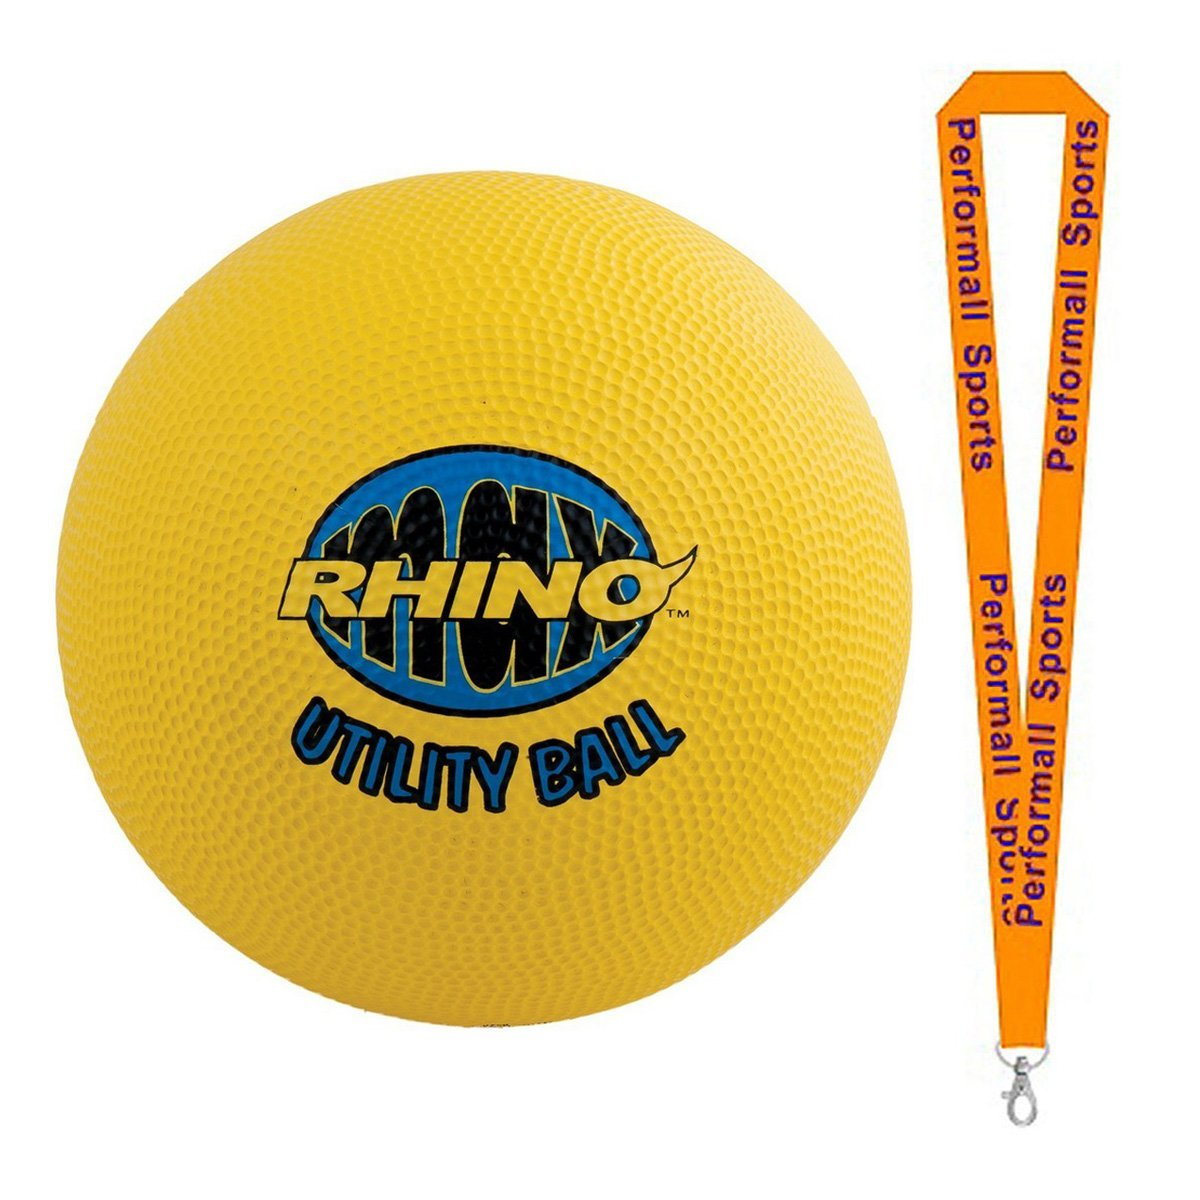 "Champion Sports Bundle: Rhino Max 10"" Utility Ball Yellow with 1 Performall Lanyard RMX10-1P"